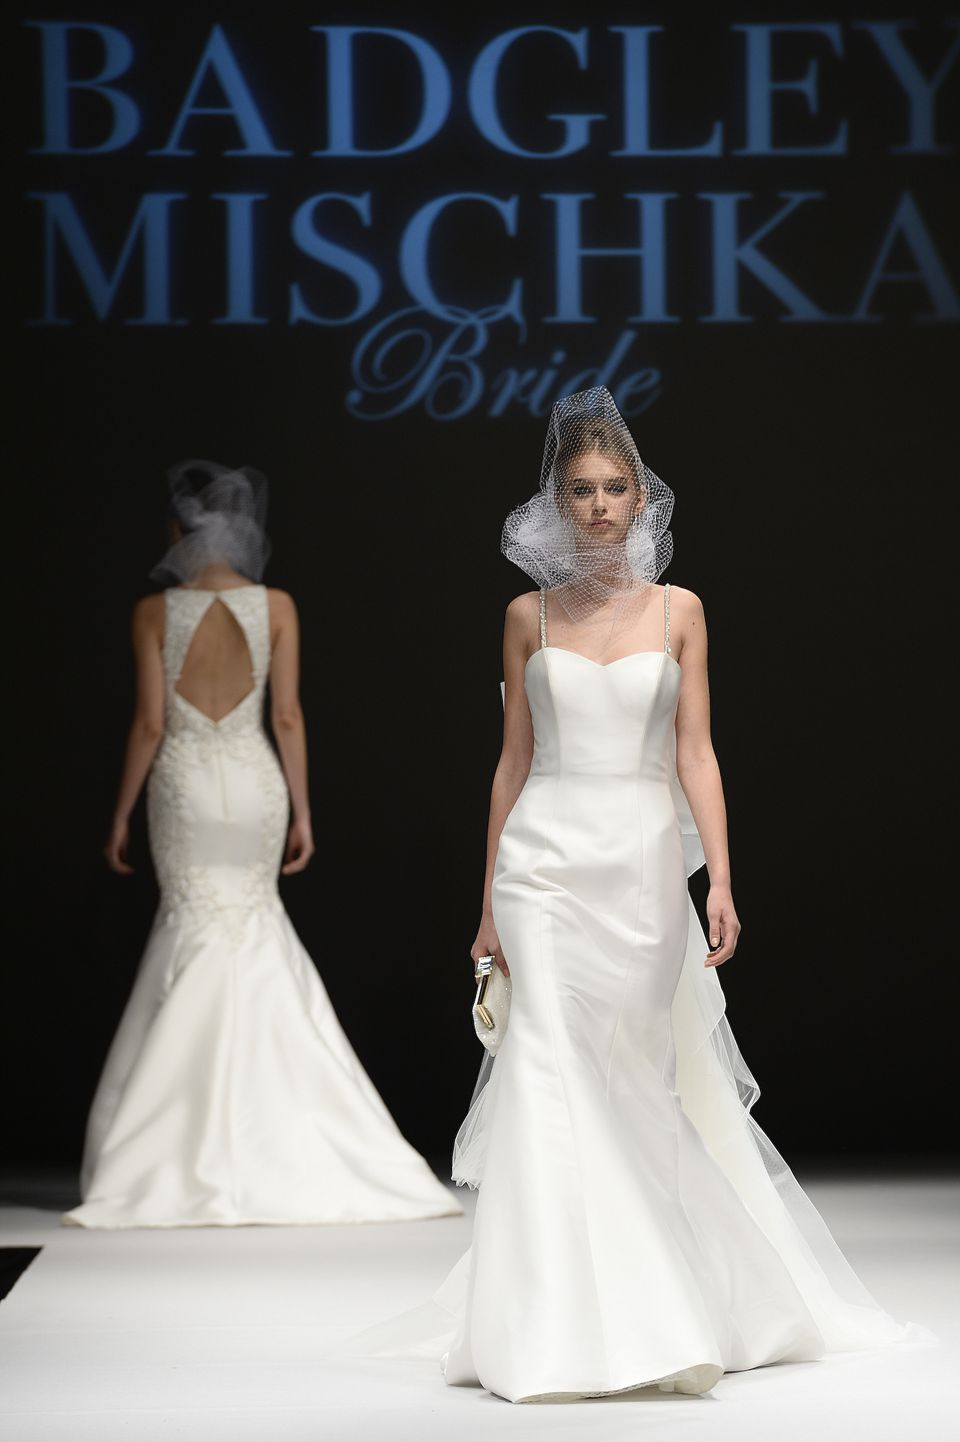 Badgley Mischka bridal gowns